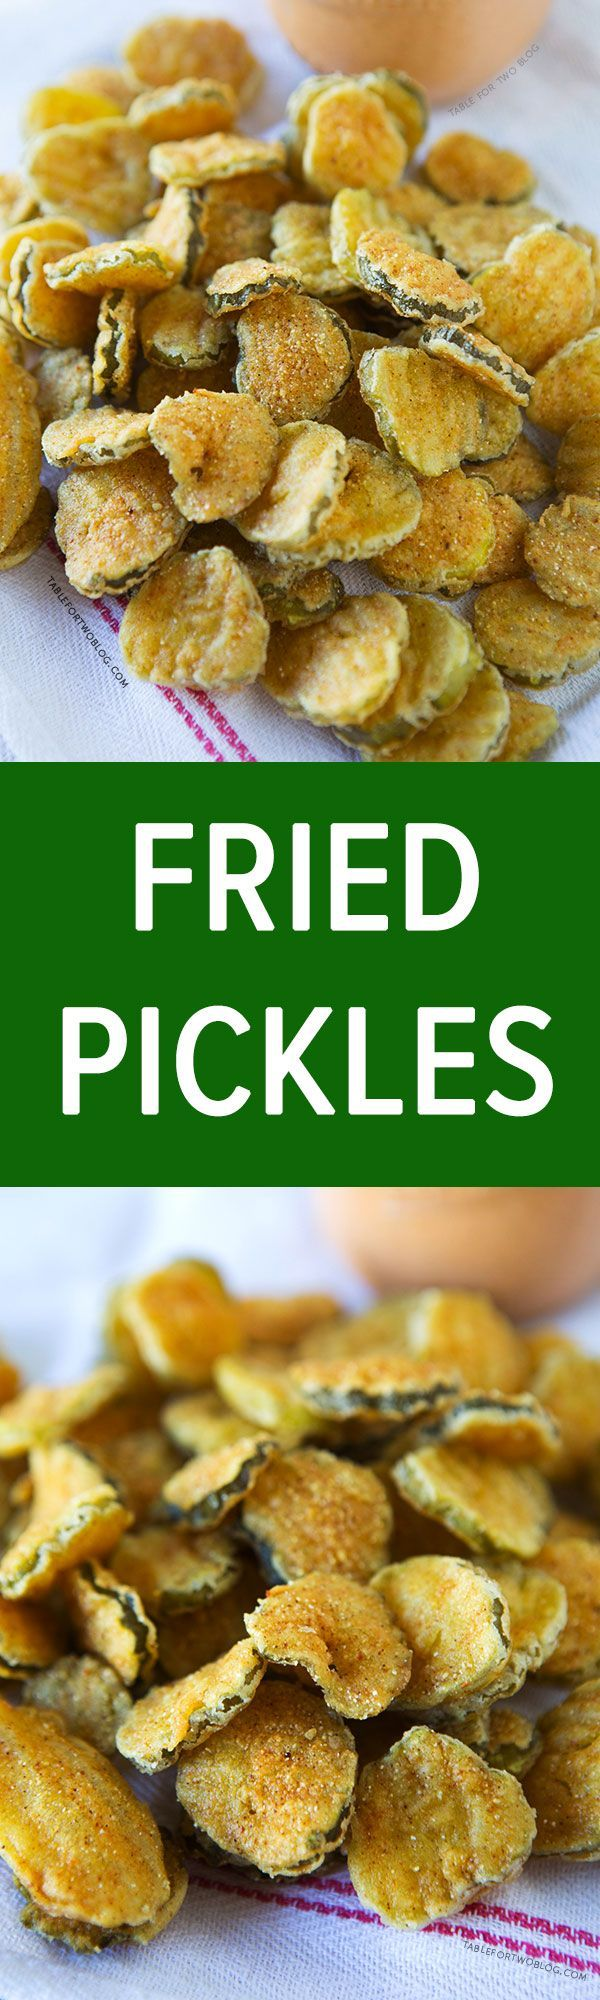 Fried Pickles Air fryer recipes